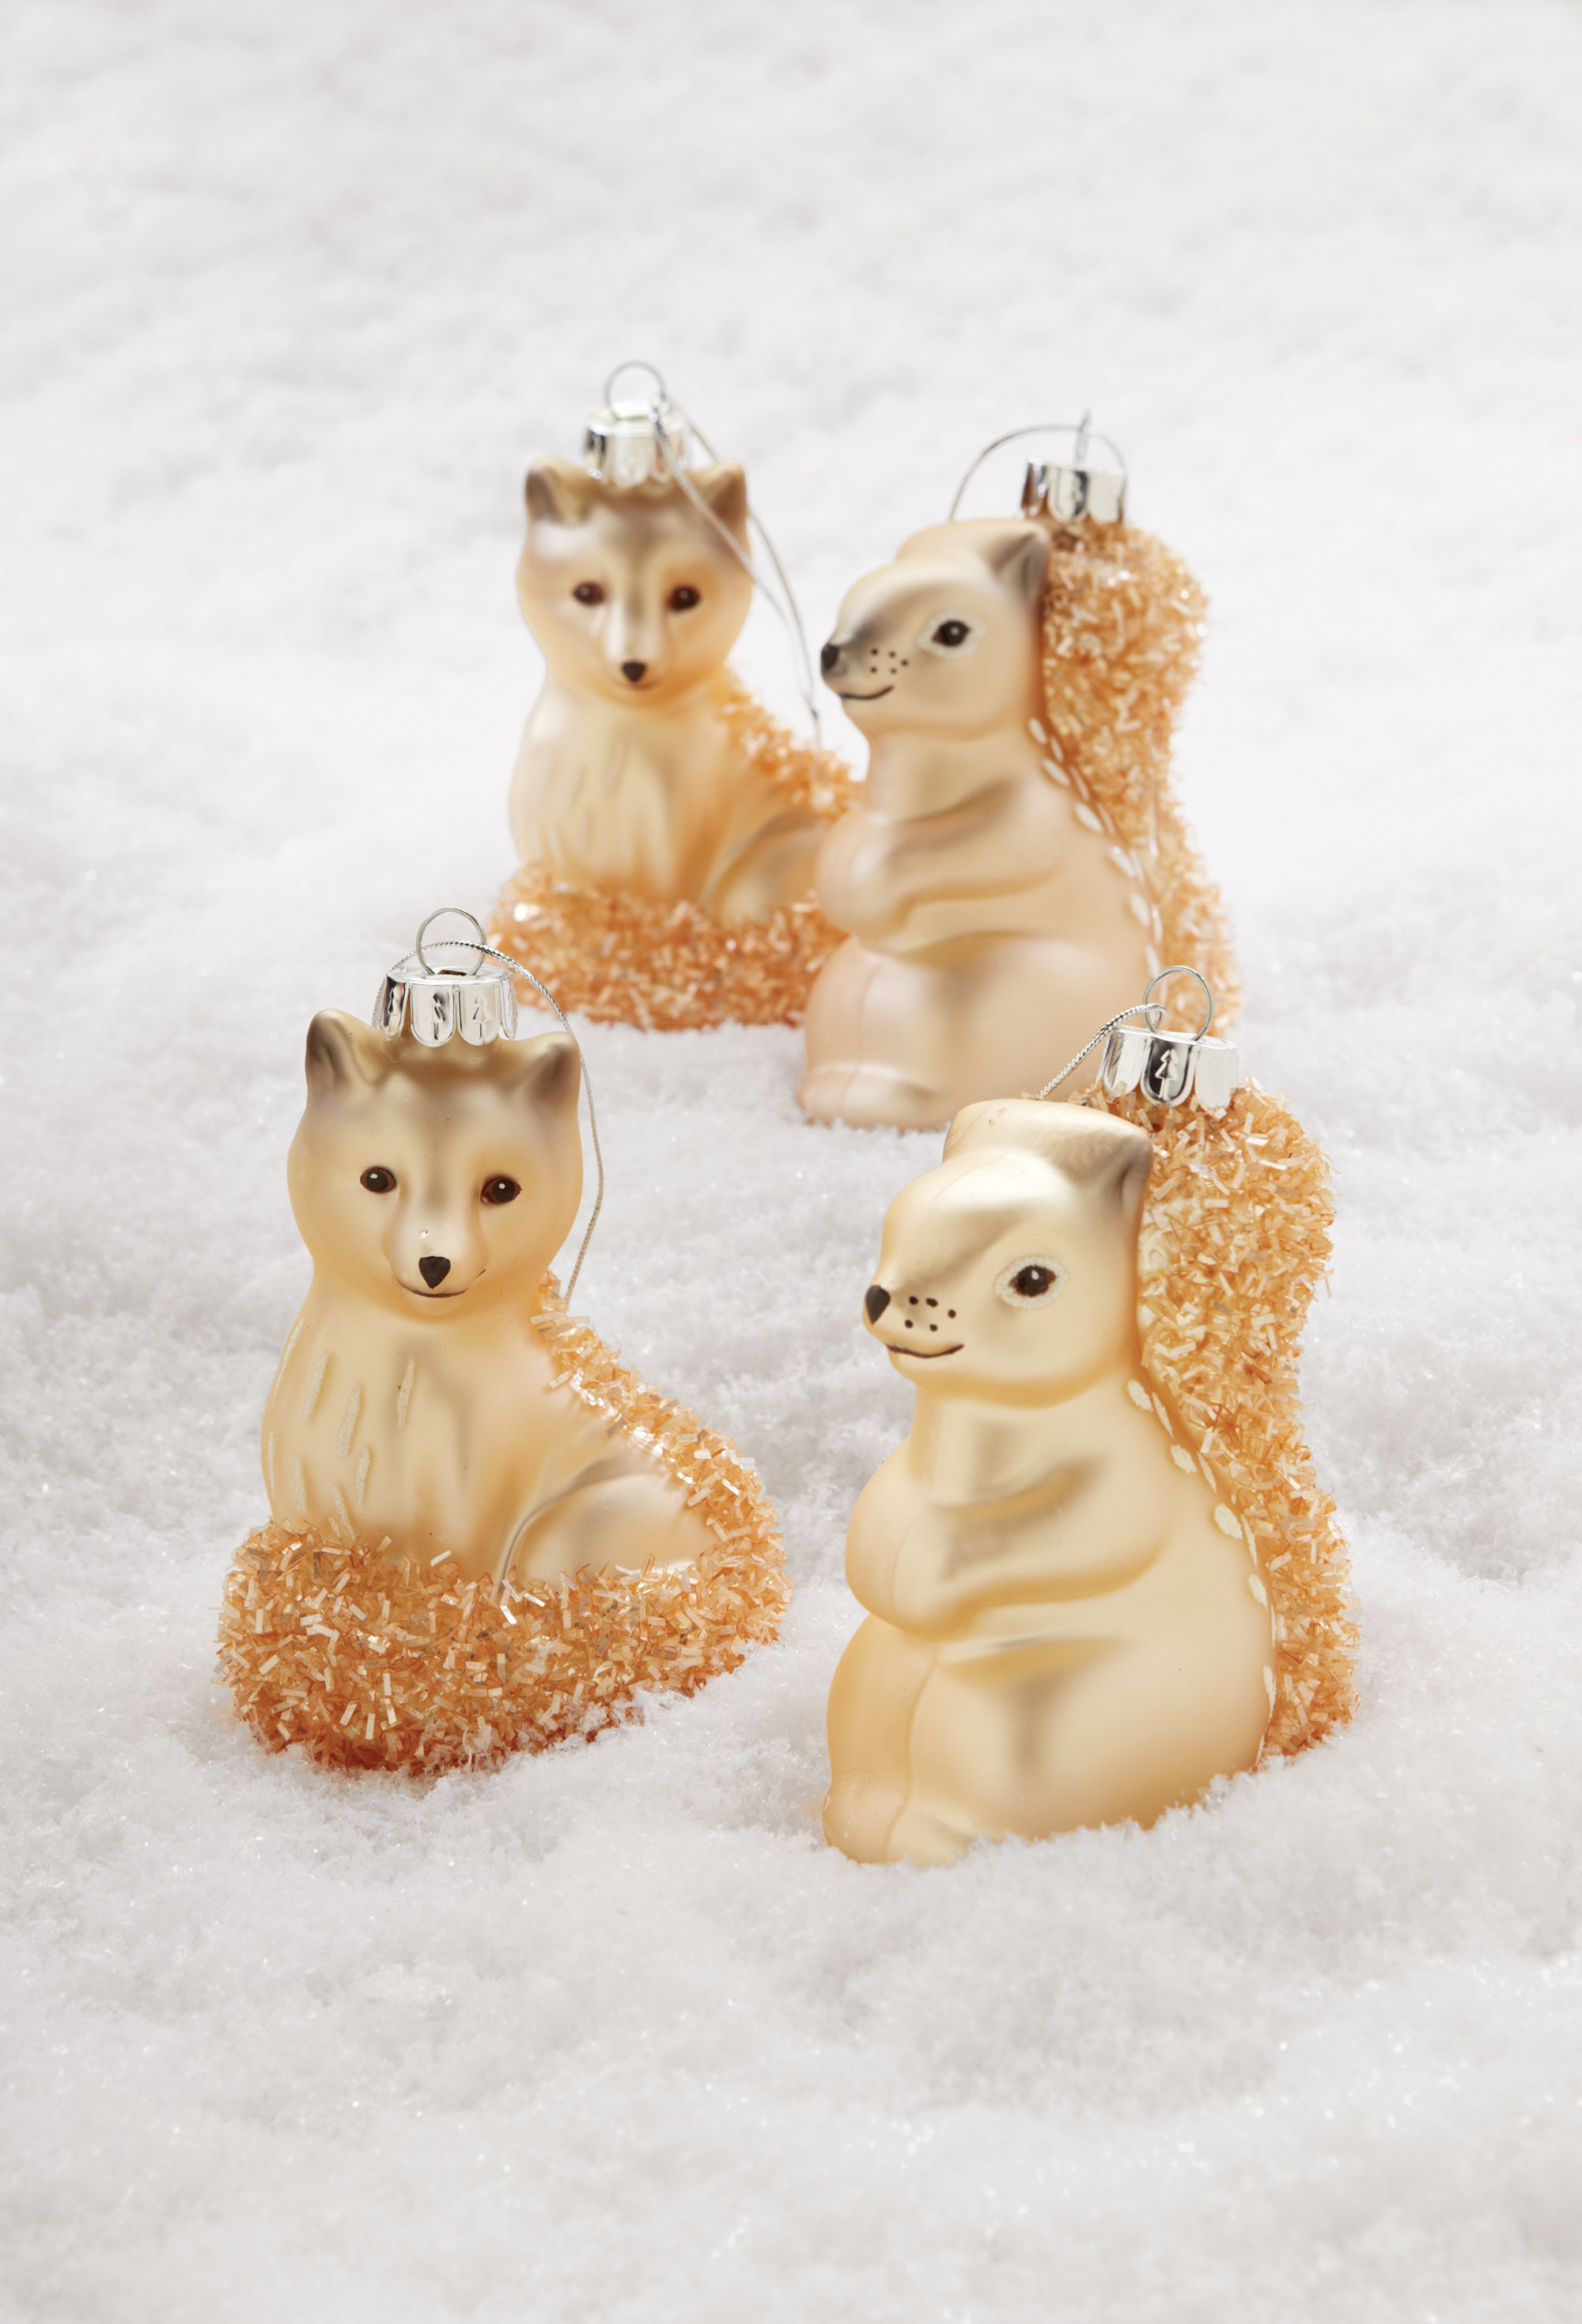 Fun with animal friends these squirrel and fox ornaments